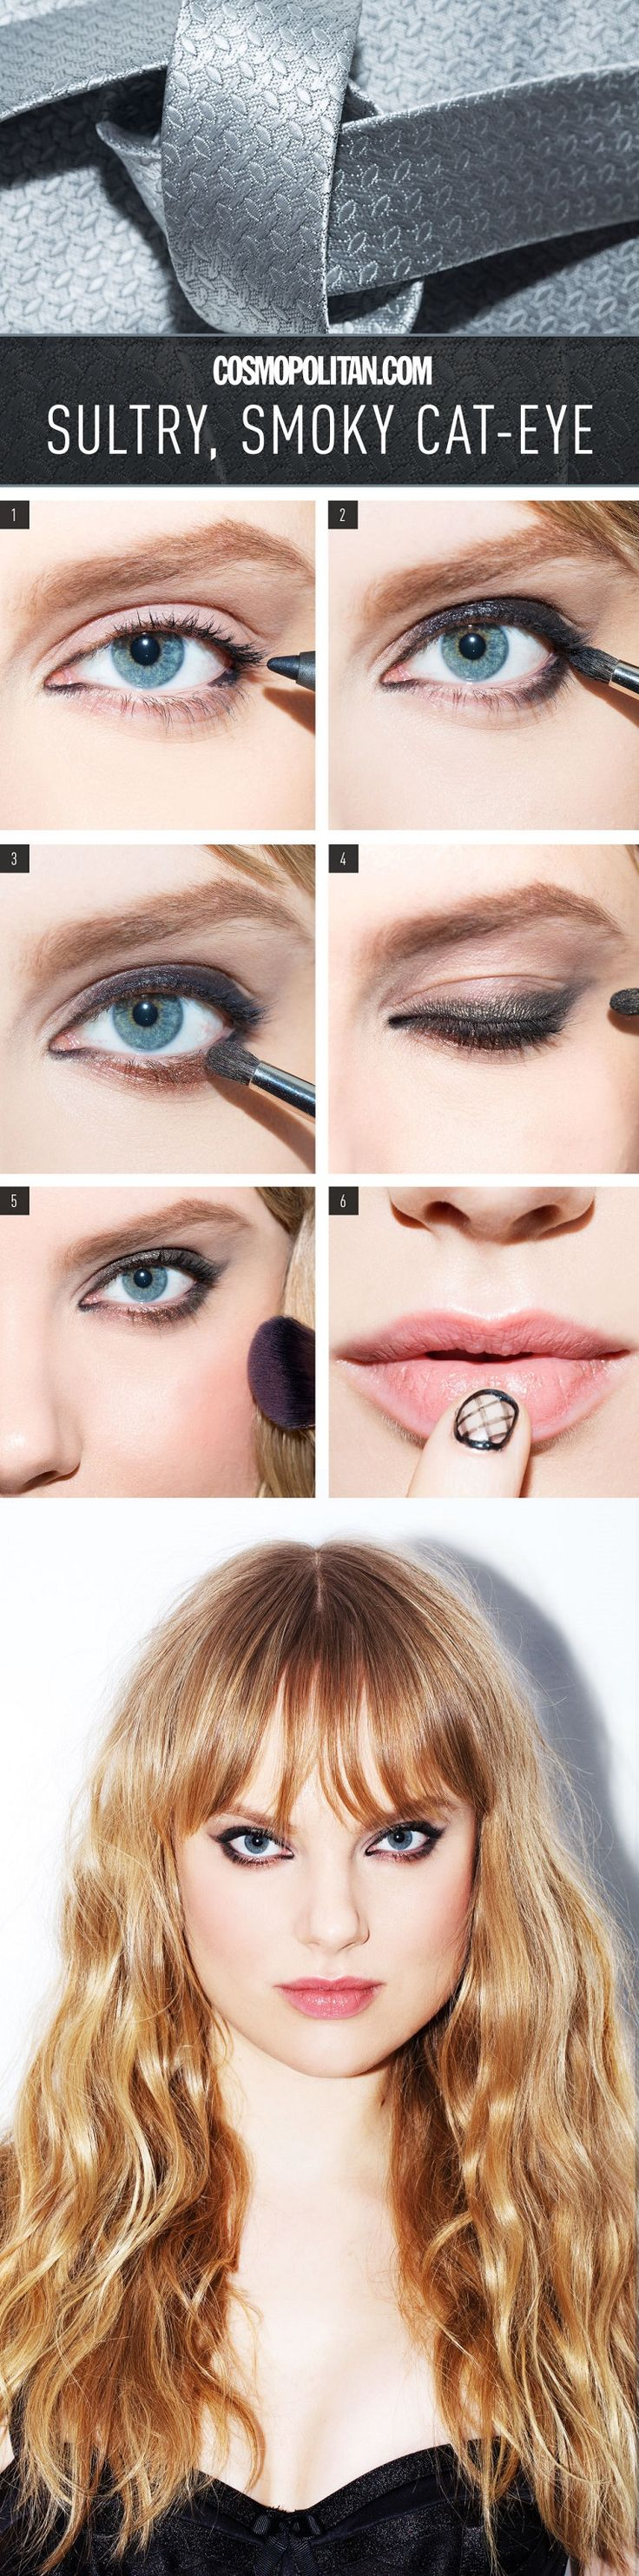 Sultry, Smoky Cat-Eye How-To